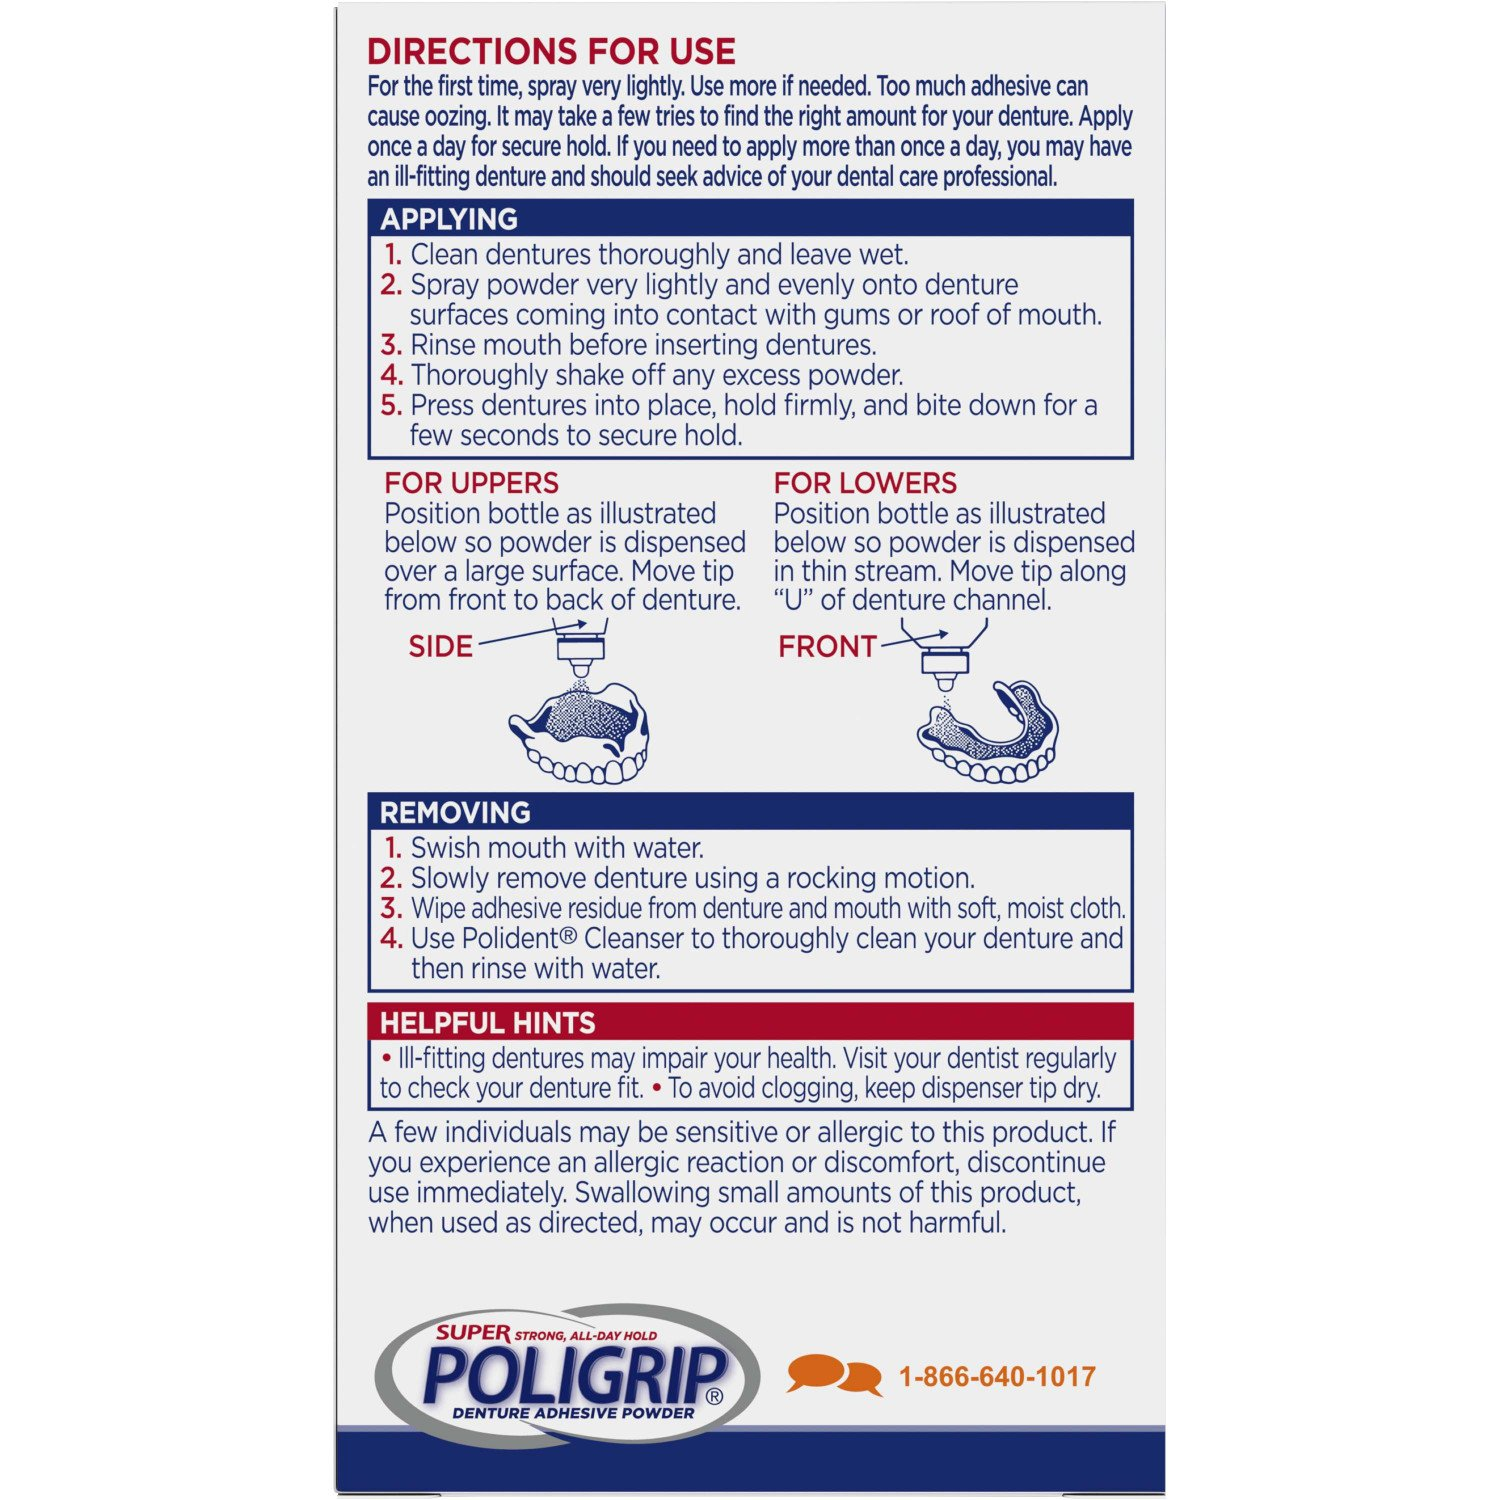 Super Poligrip Extra Strength Denture Adhesive Powder, 1.6 ounce (Pack of 6) (Packaging may vary) by Super Poli-Grip (Image #2)